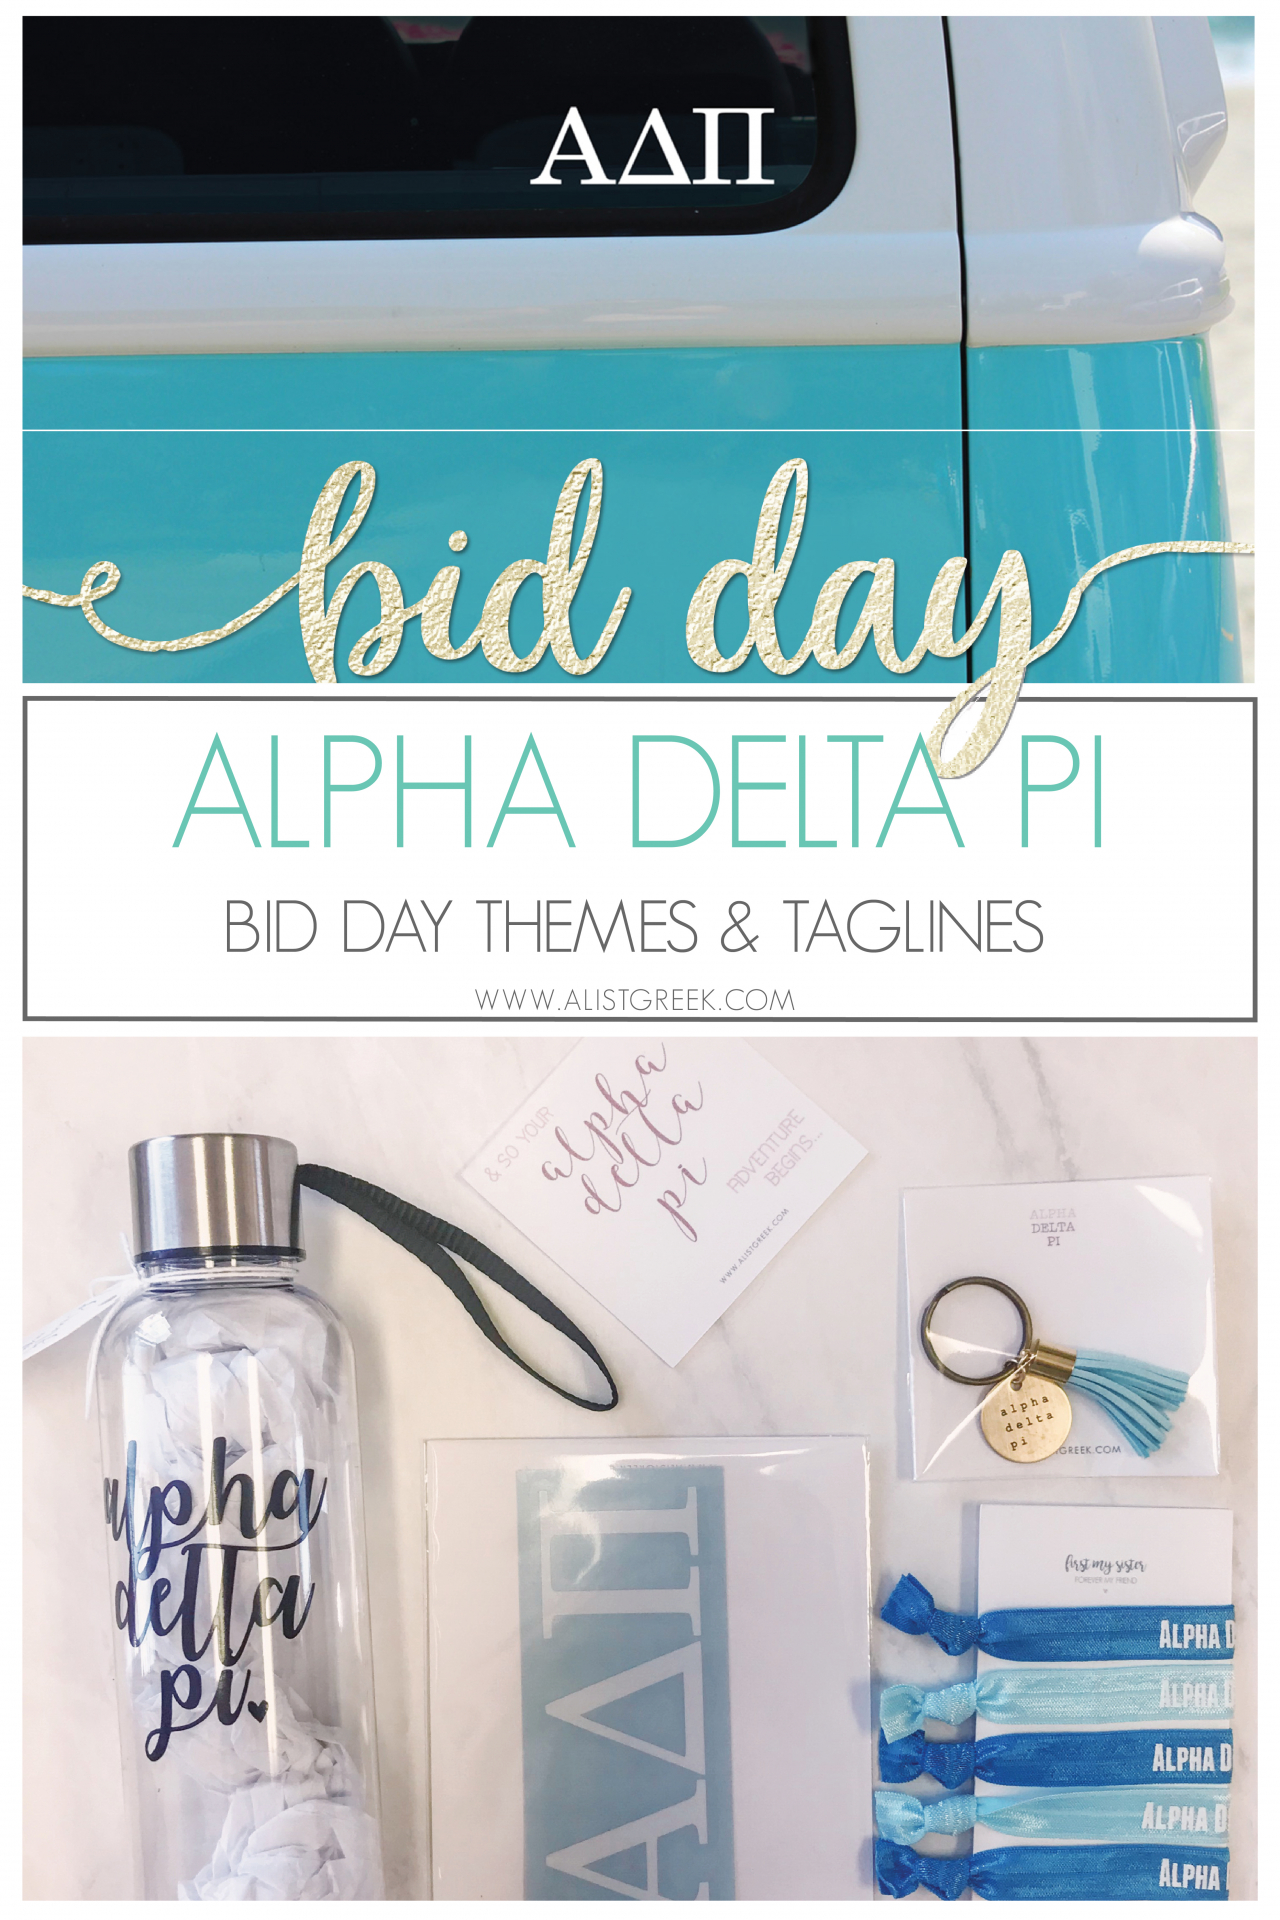 Alpha Delta Pi Blog Feature Image